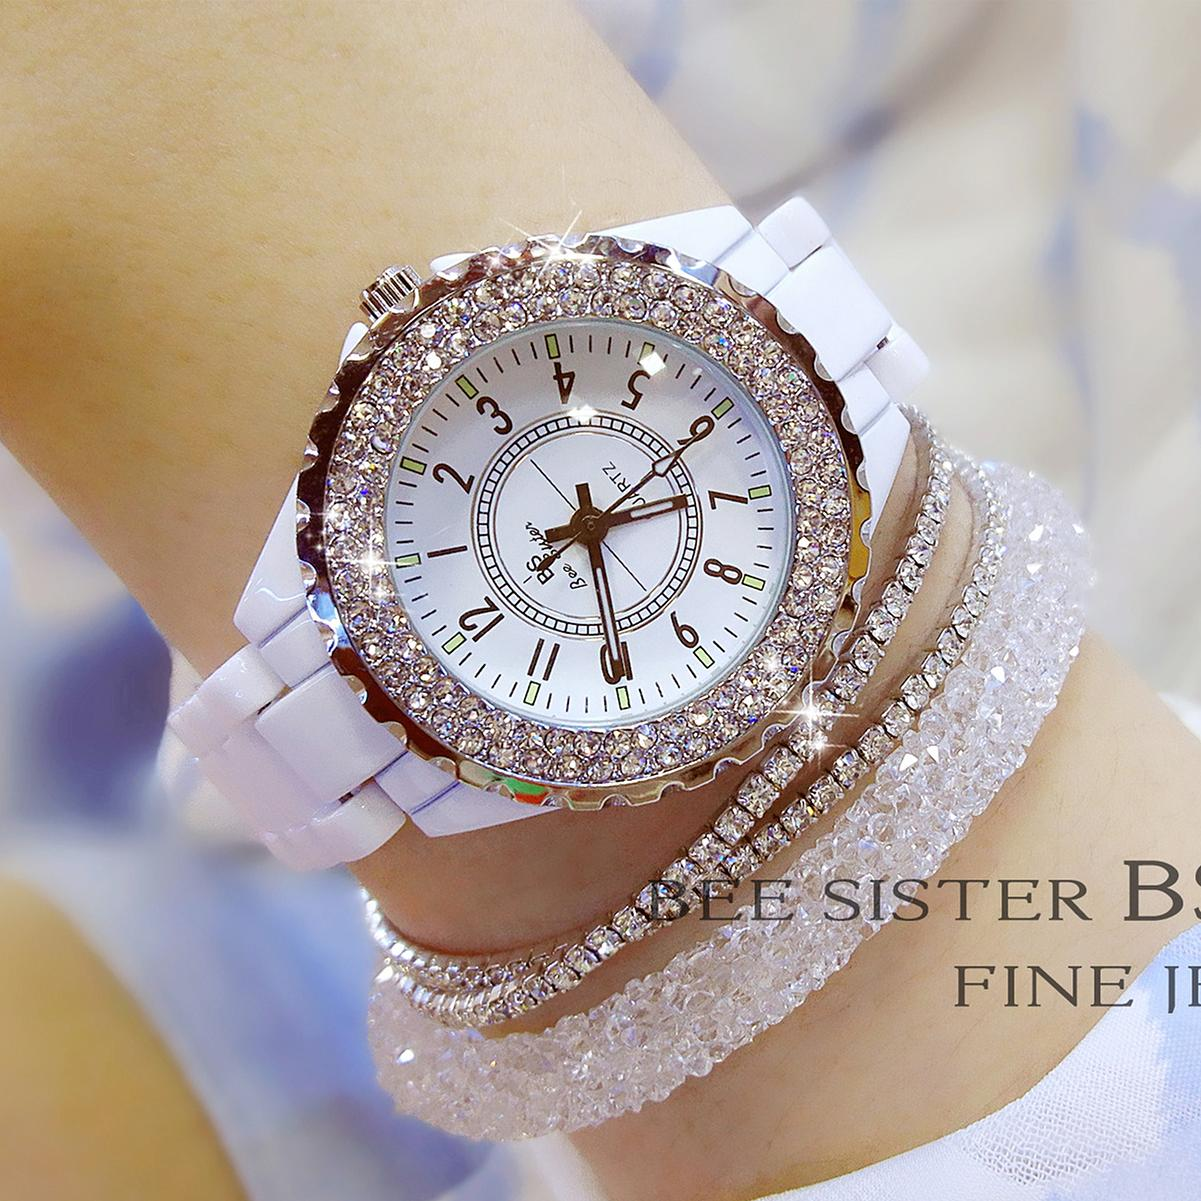 BS foreign high-end full of crystals women's watch ceramic watch